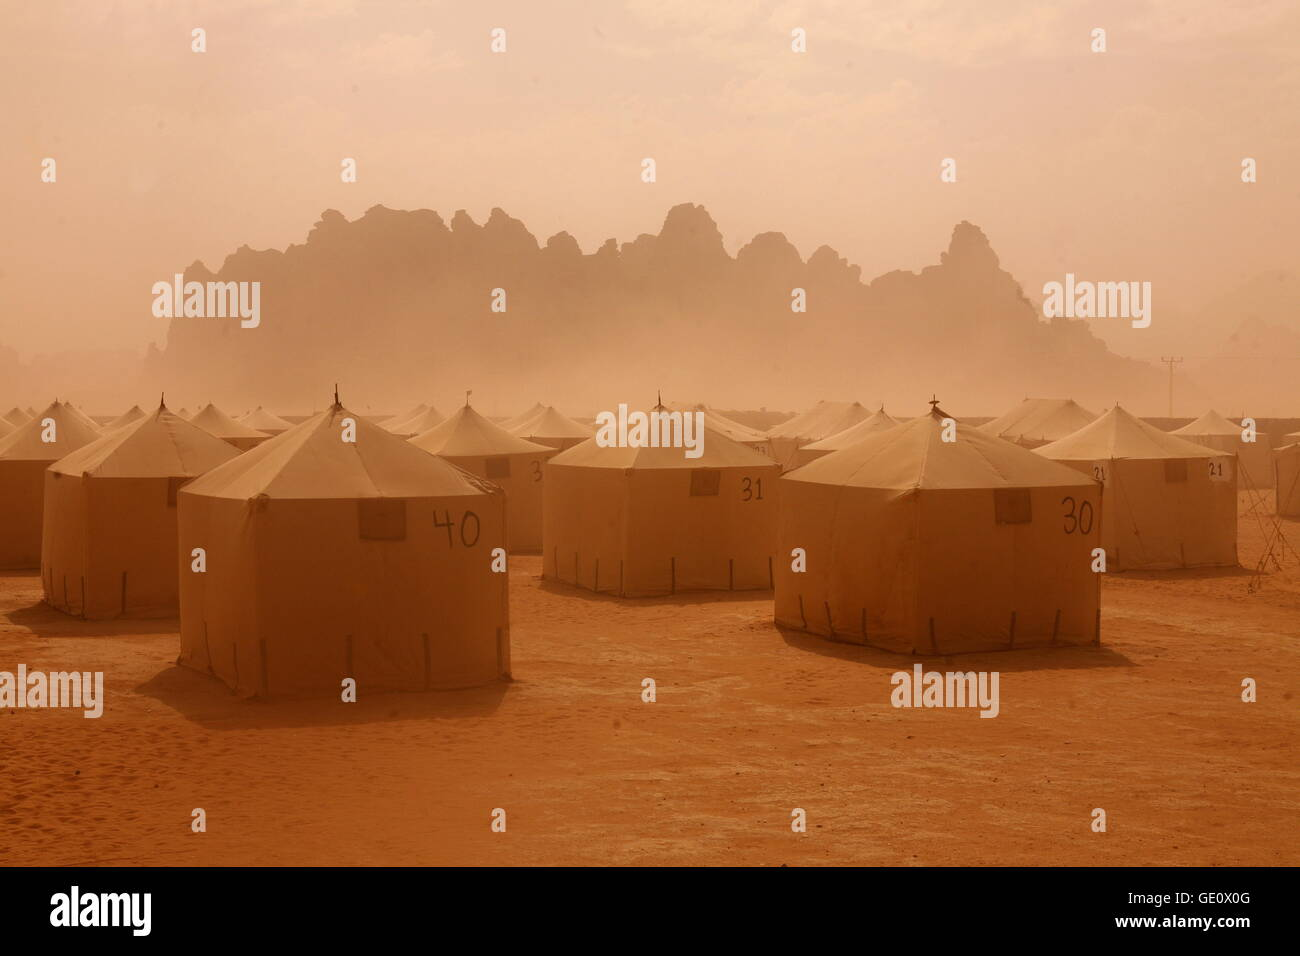 a Sandstorm in the Landscape of the Wadi Rum Desert in Jordan in the middle east. - Stock Image